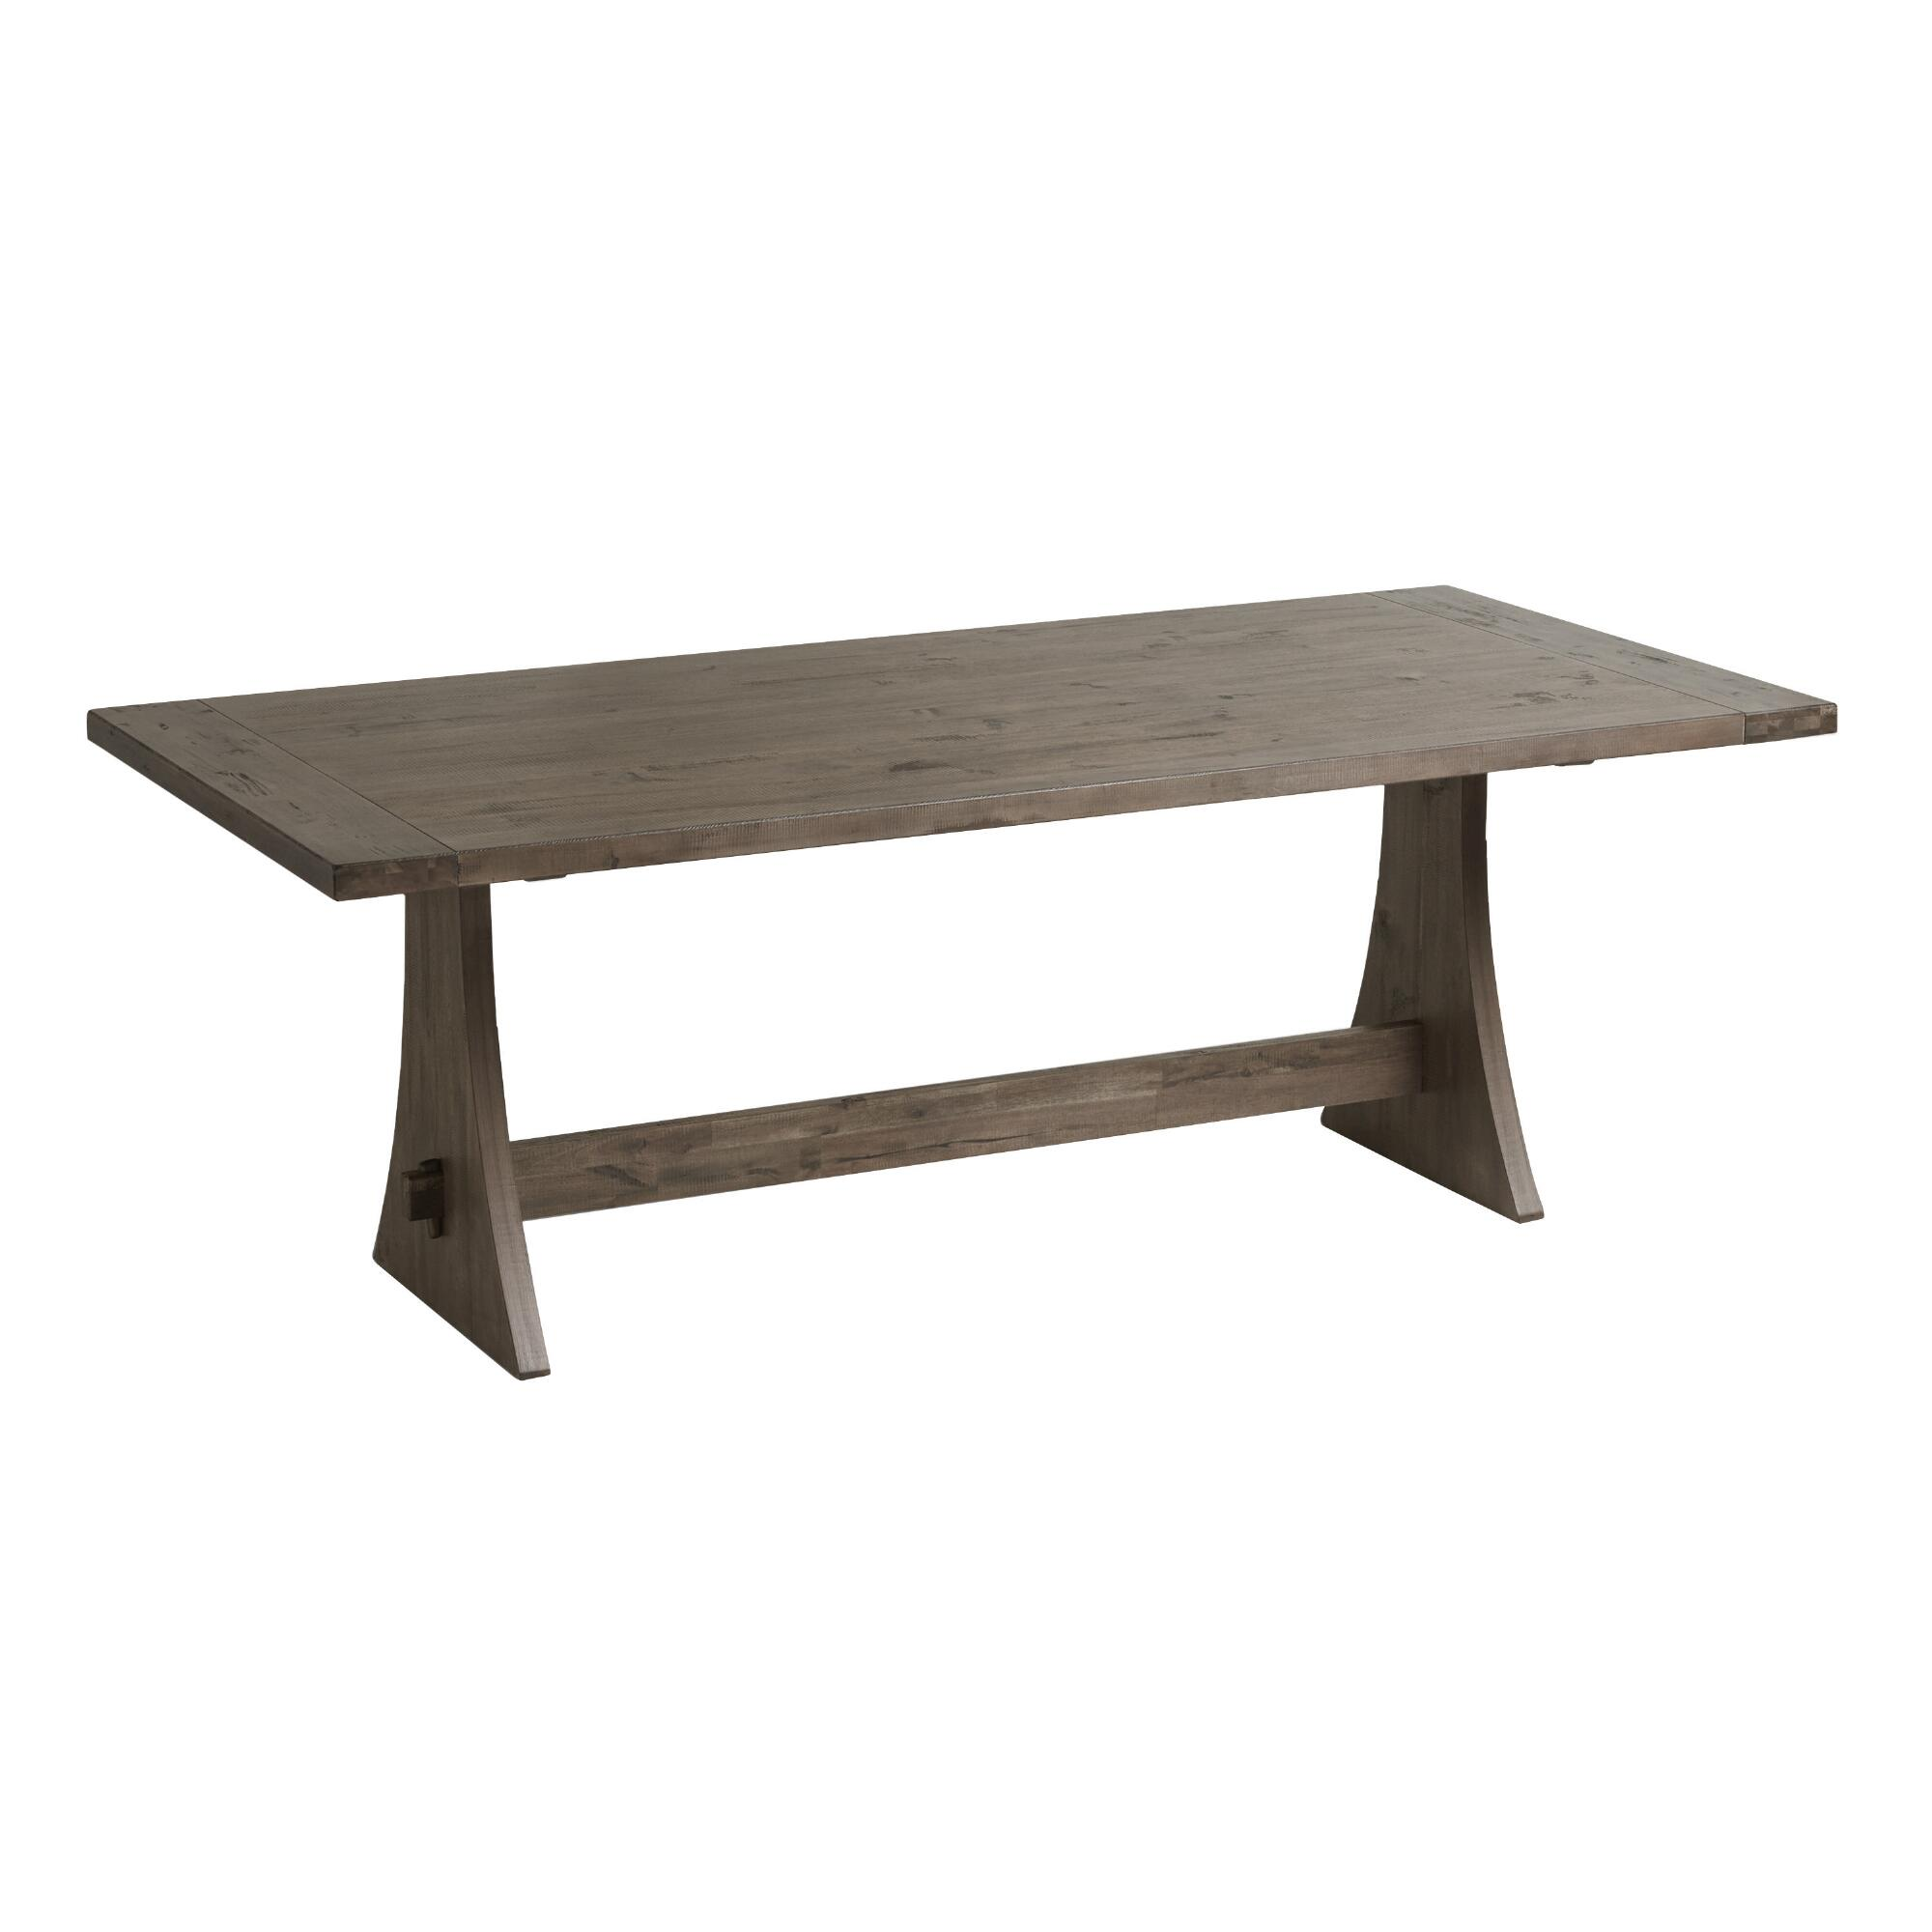 Dining Room Tables Rustic Wood Farmhouse Style World Market - Slender dining table